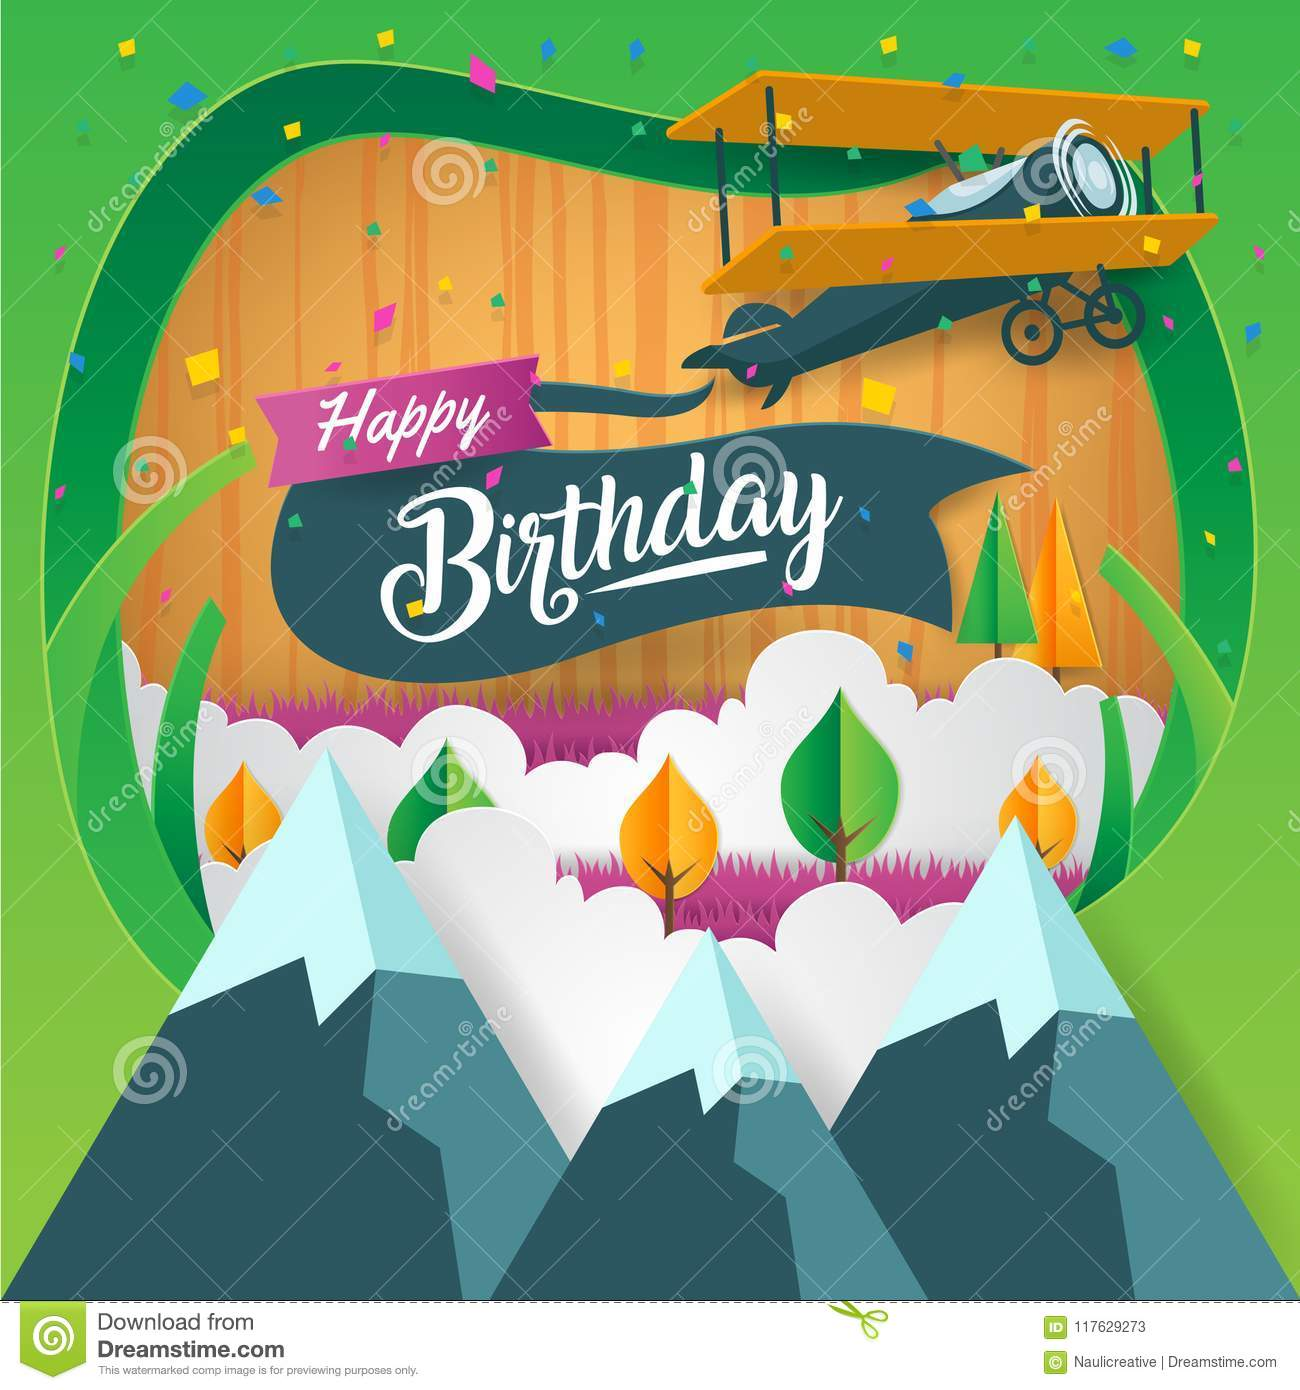 Modern Paper Art Style Back To Nature Adventure Happy Birthday Card Illustration Stock Vector Illustration Of Element Background 117629273